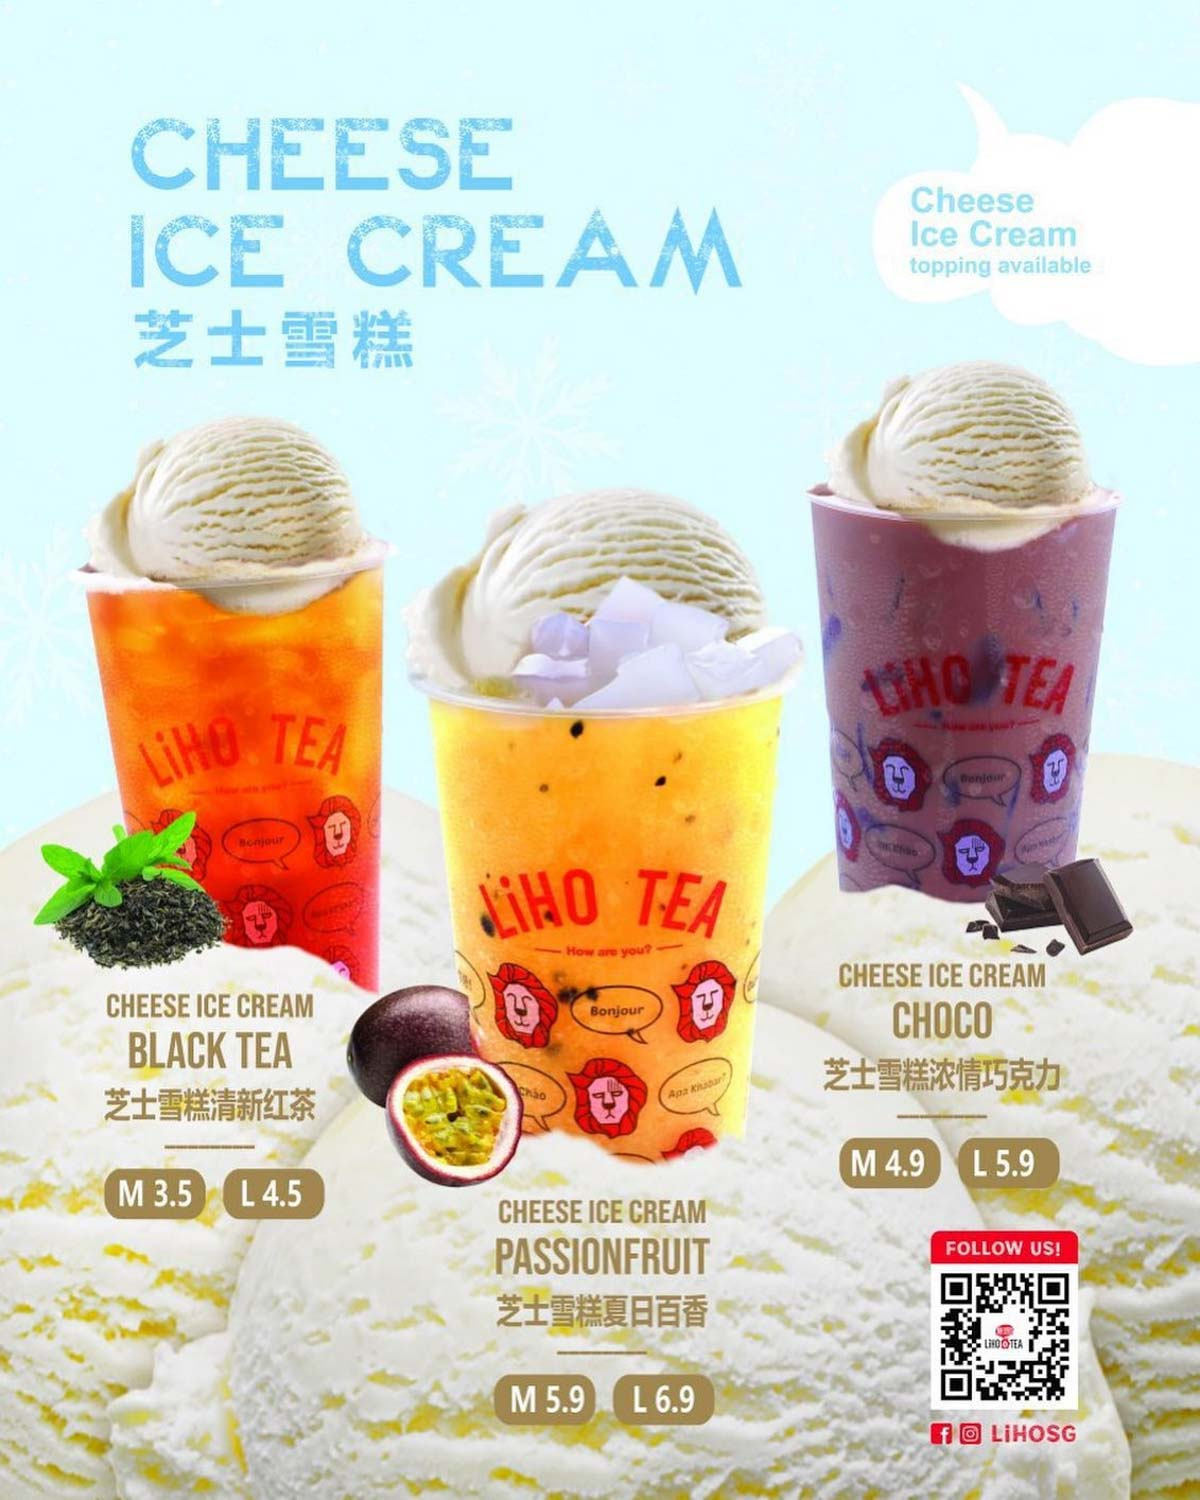 liho cheese ice cream - cheese ice cream series